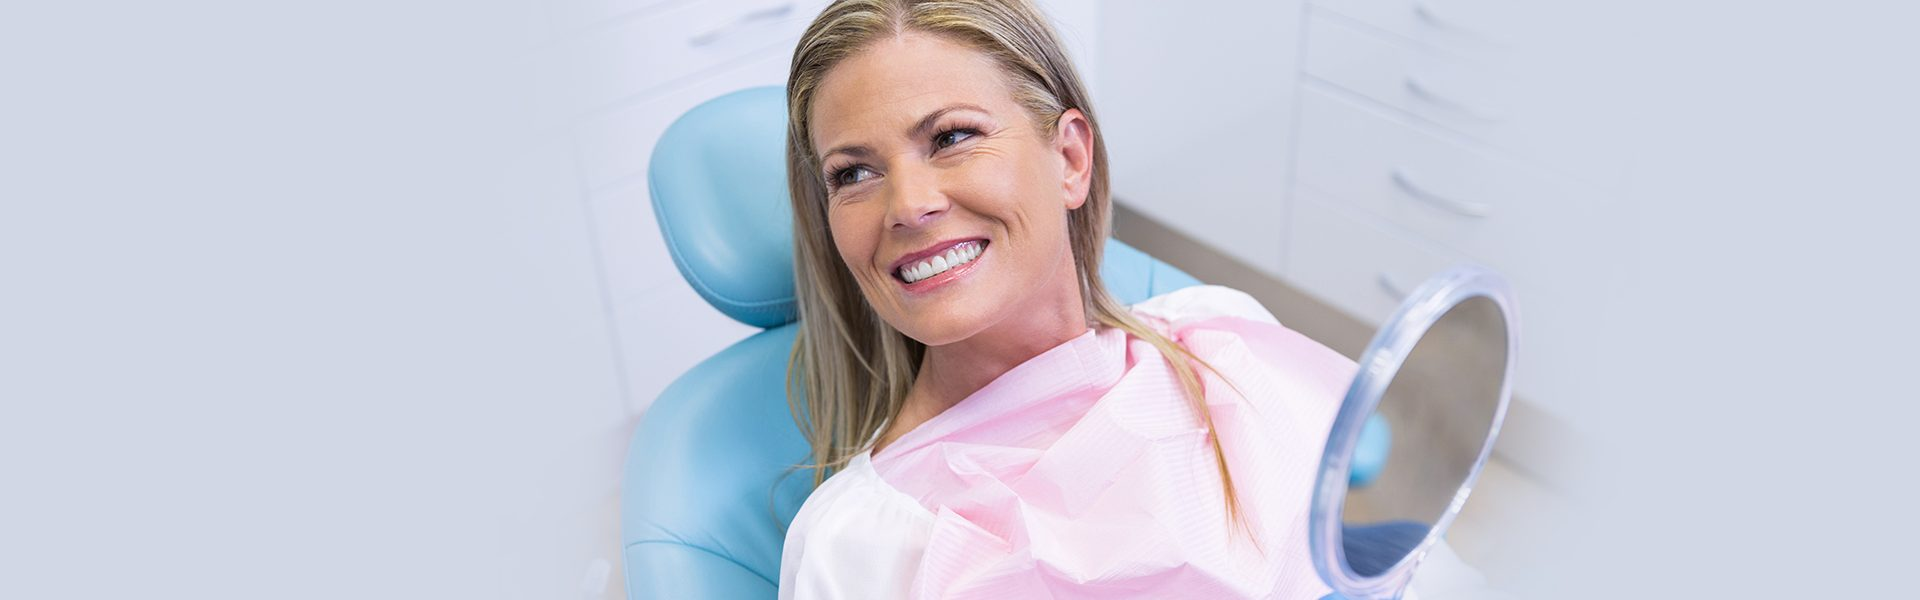 How Sticking to Dental Exams & Cleaning Can Give You Better Health?